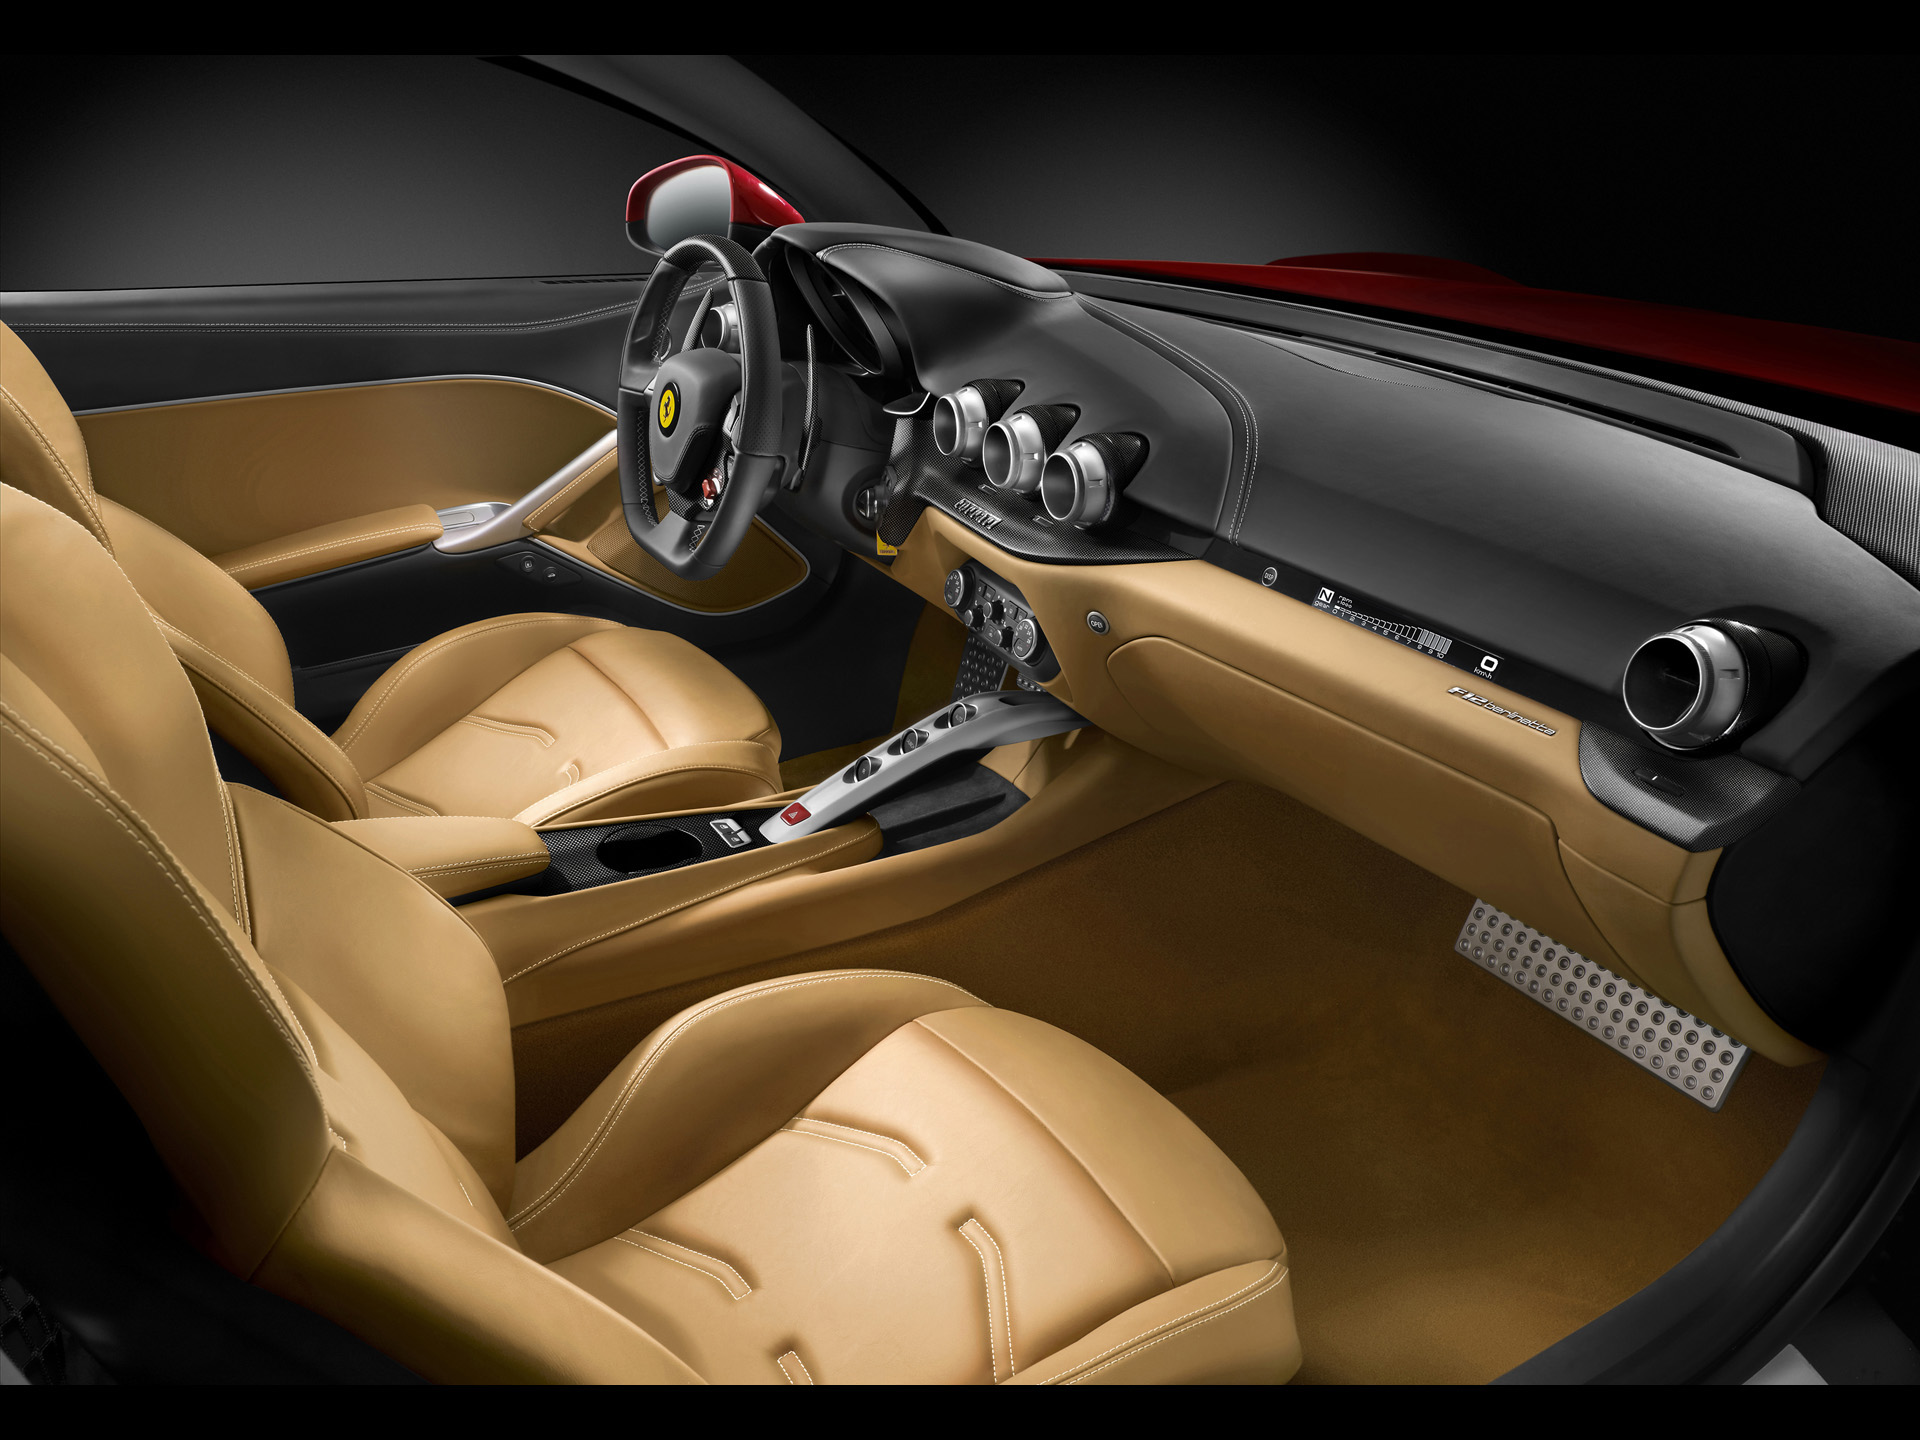 Ferrari F12 Berlinetta interior #1